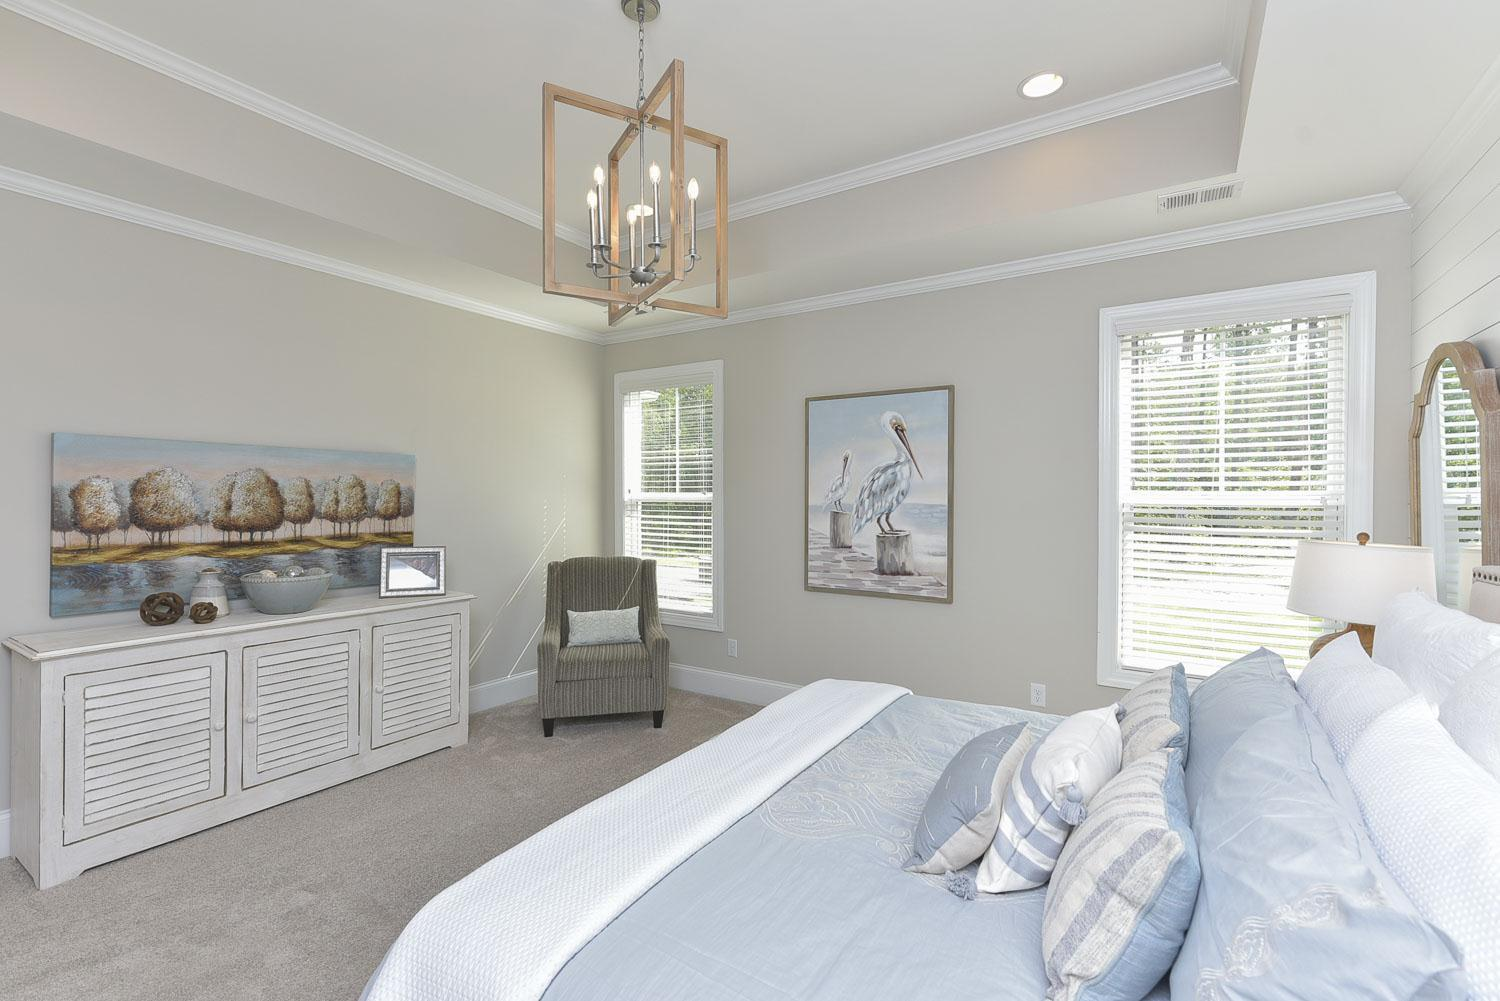 Bedroom featured in the Northwood Villas-Sawgrass III By Executive Construction Homes